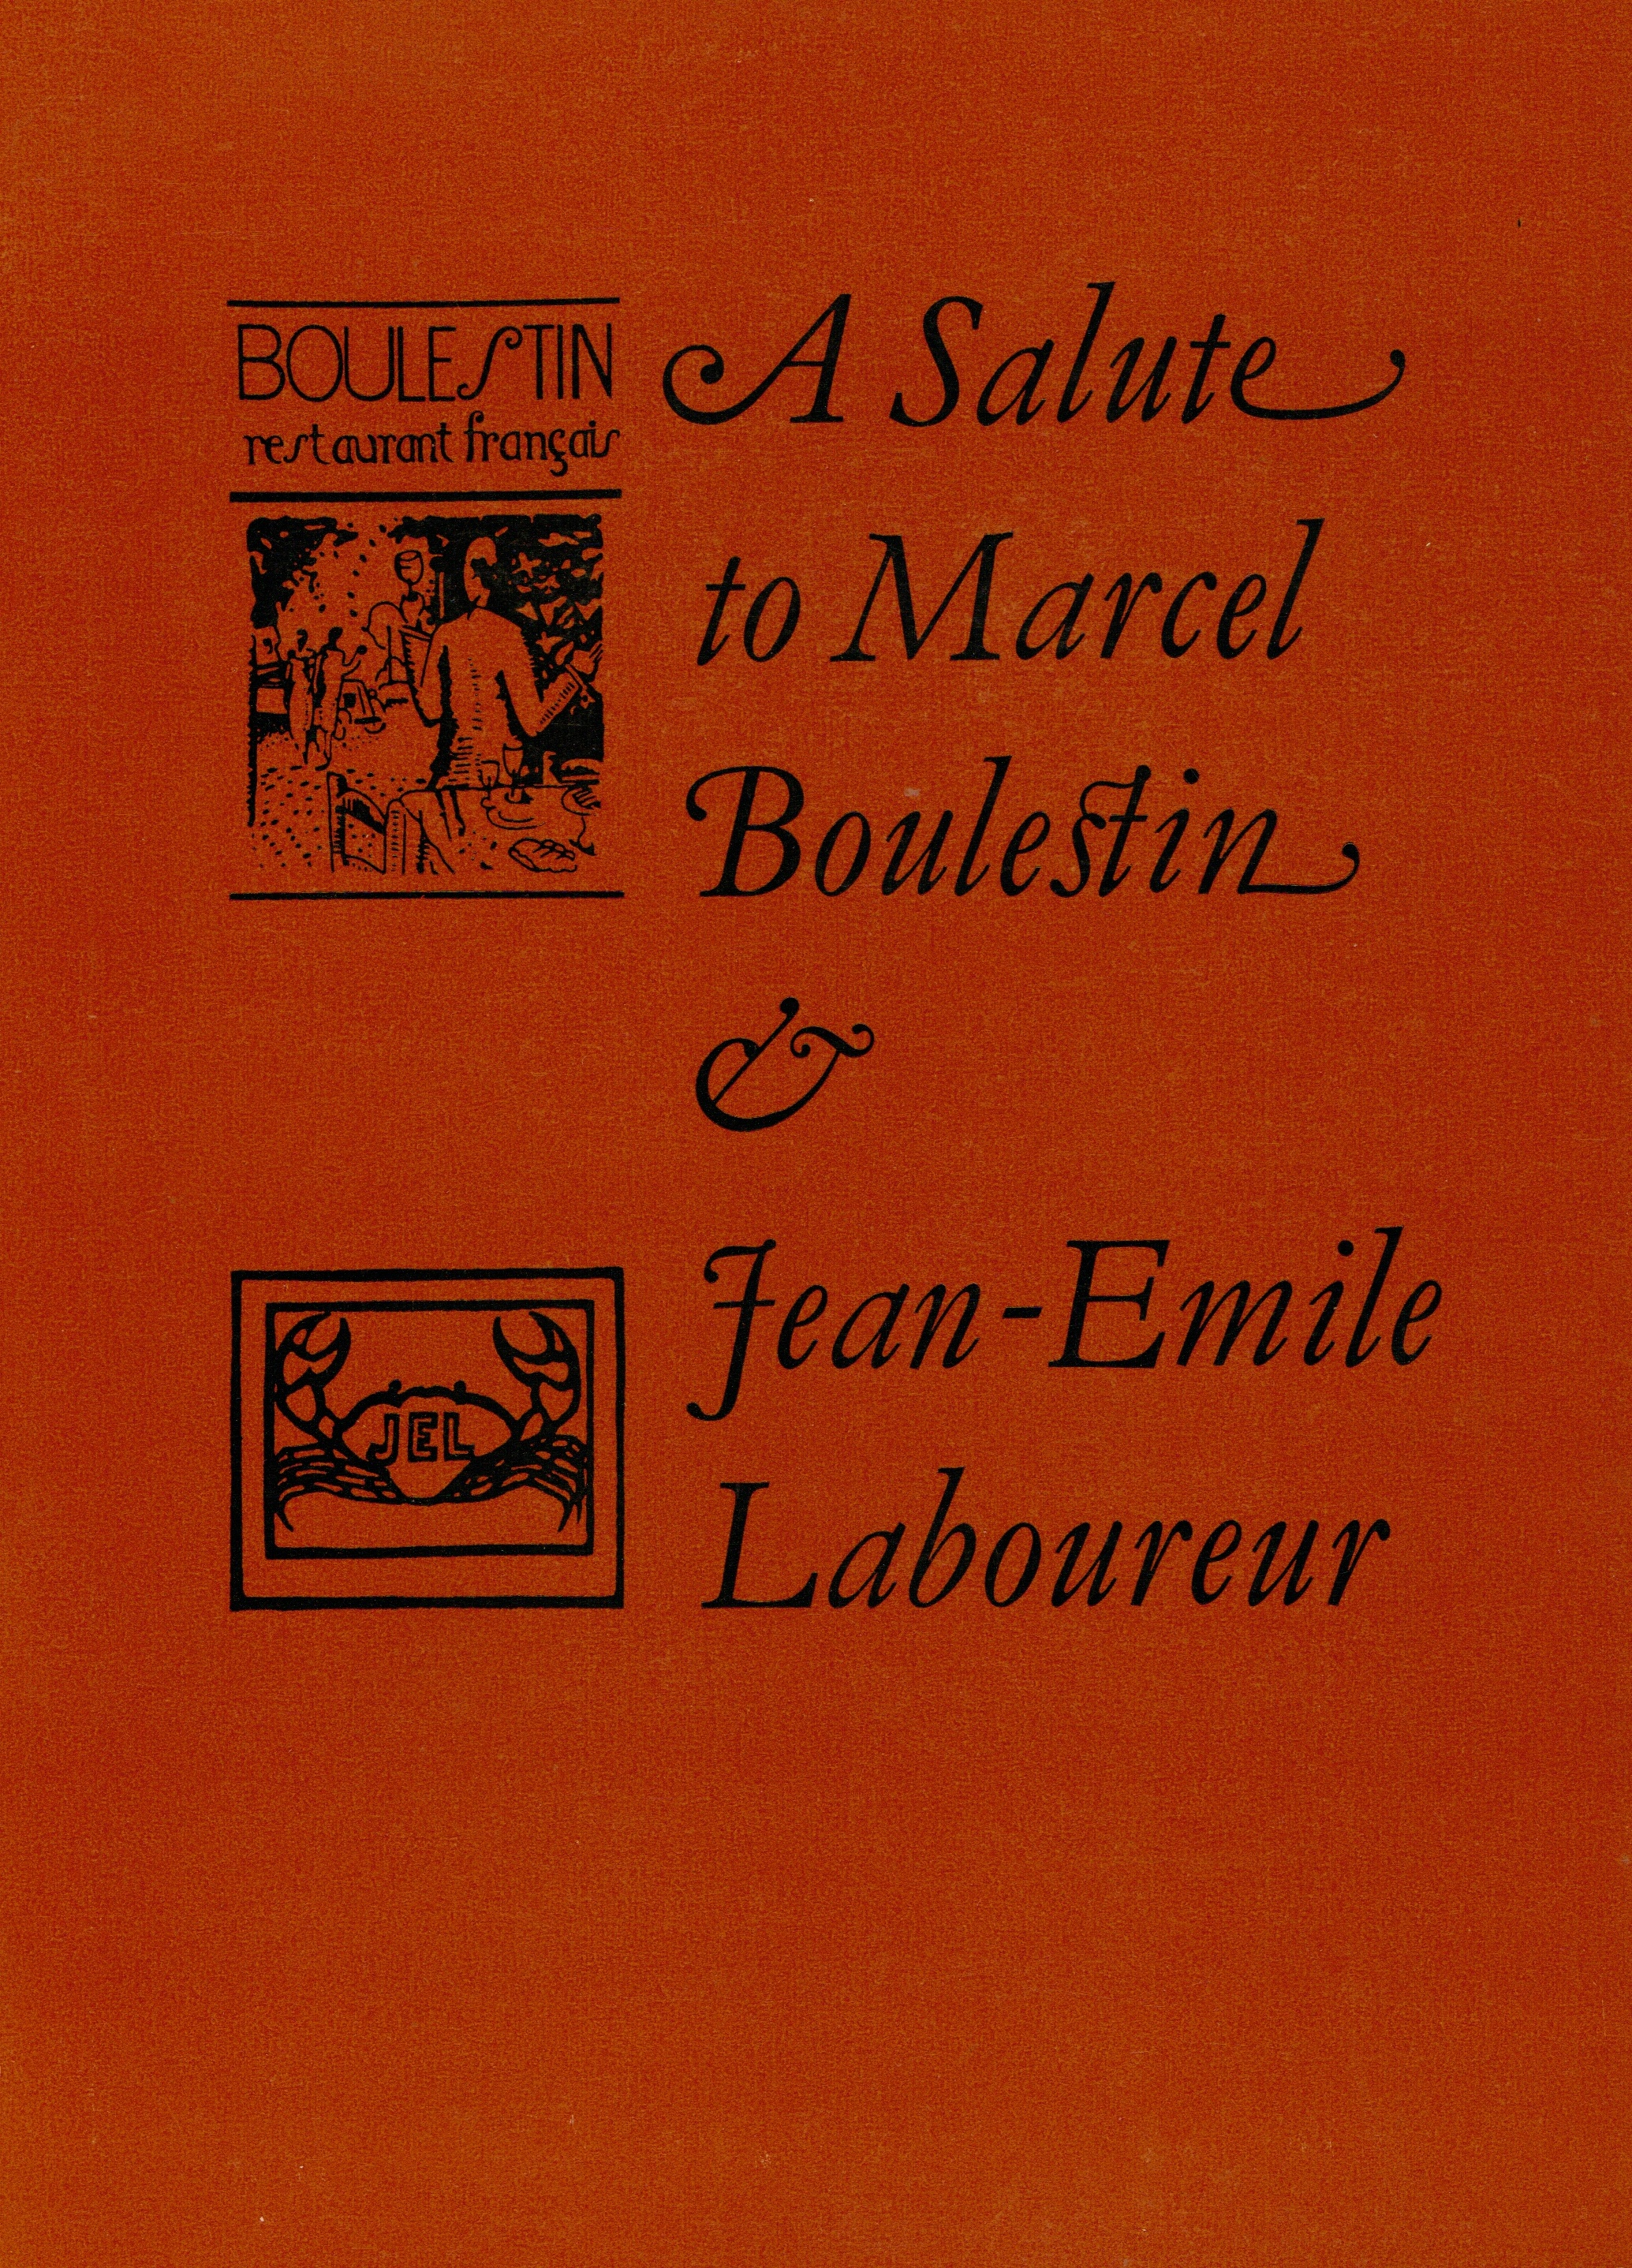 A Salute to Boulestin & Laboureur